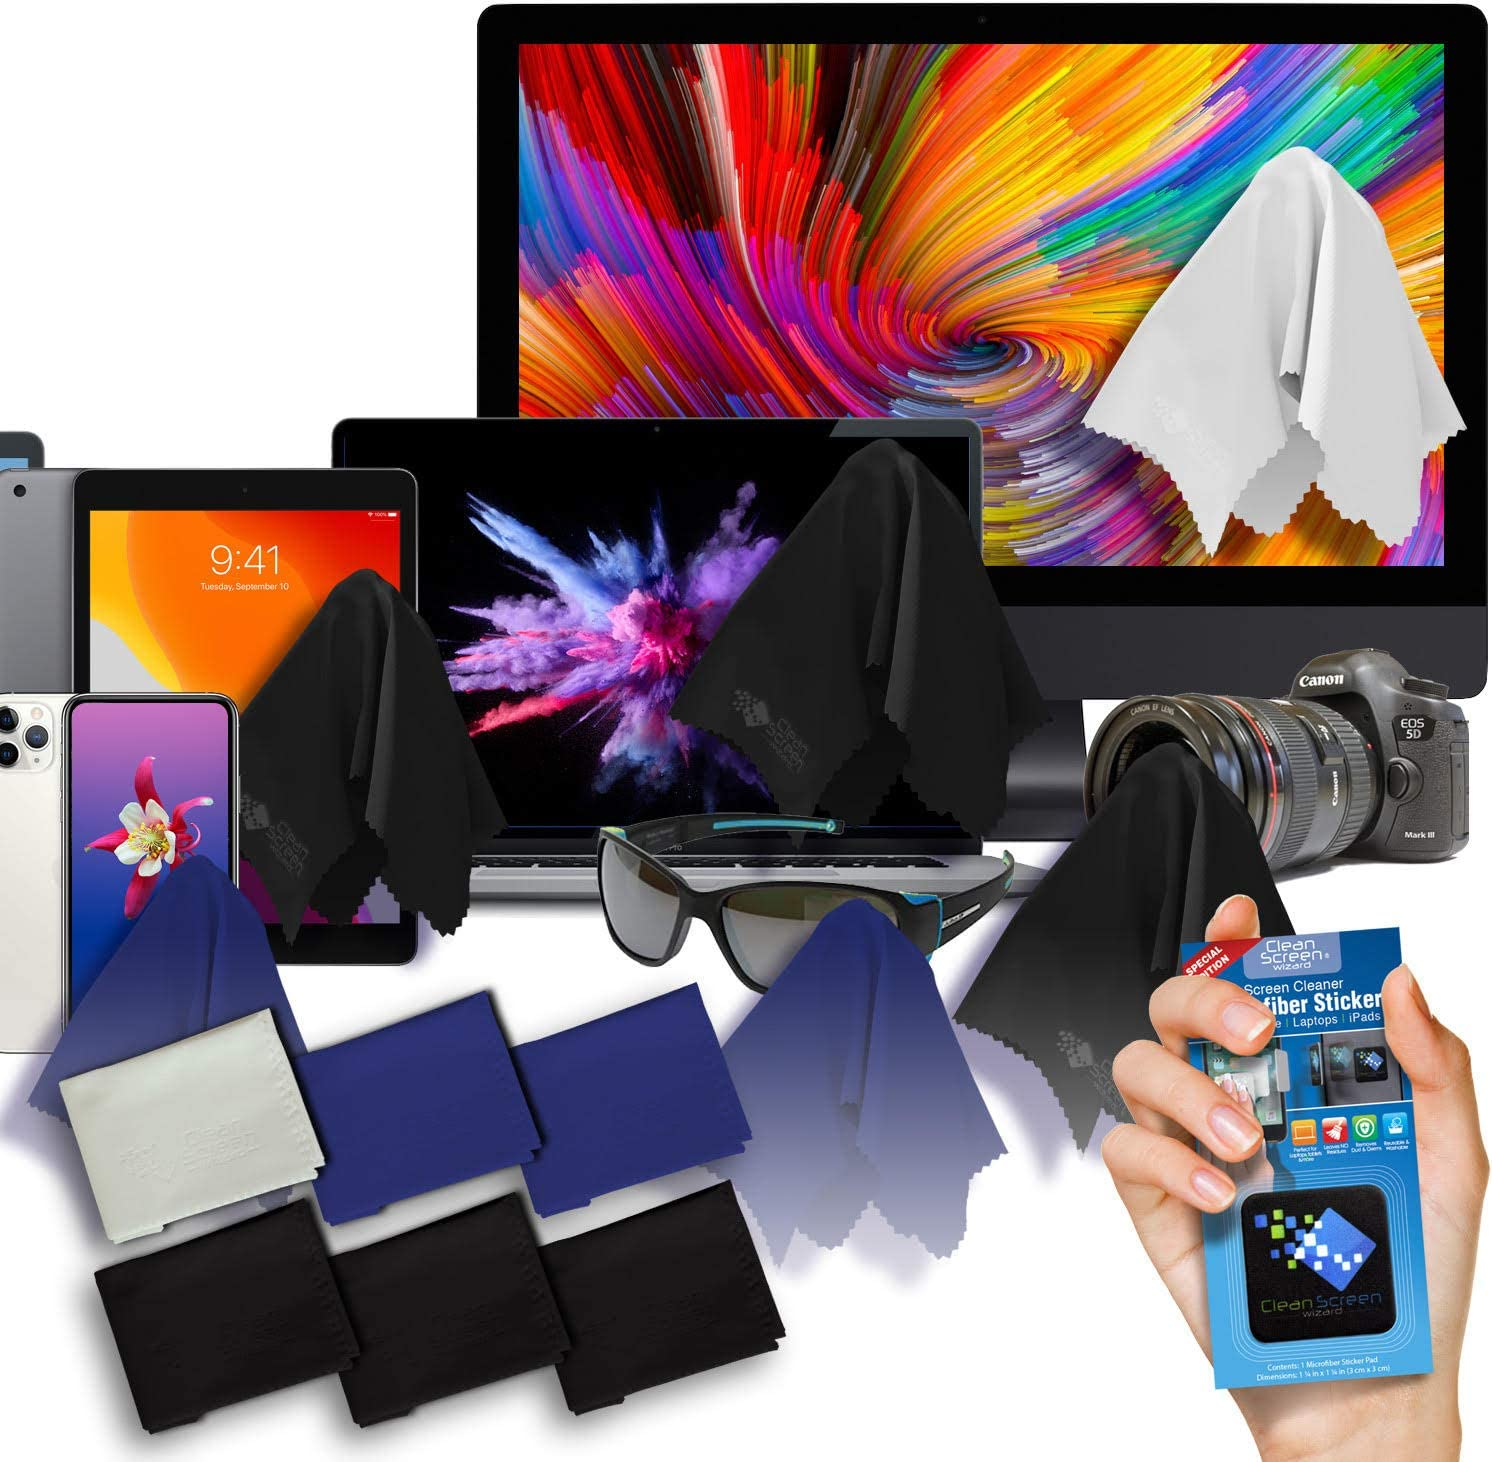 Monitor Cleaning All in One SenseAGE x Ekax Slim Microfiber Cleaning Cloths Screen /& Keyboard Protection Gray Portable /& Washable Lens Smartphone Camera Cleaning for MacBook LCD Screen